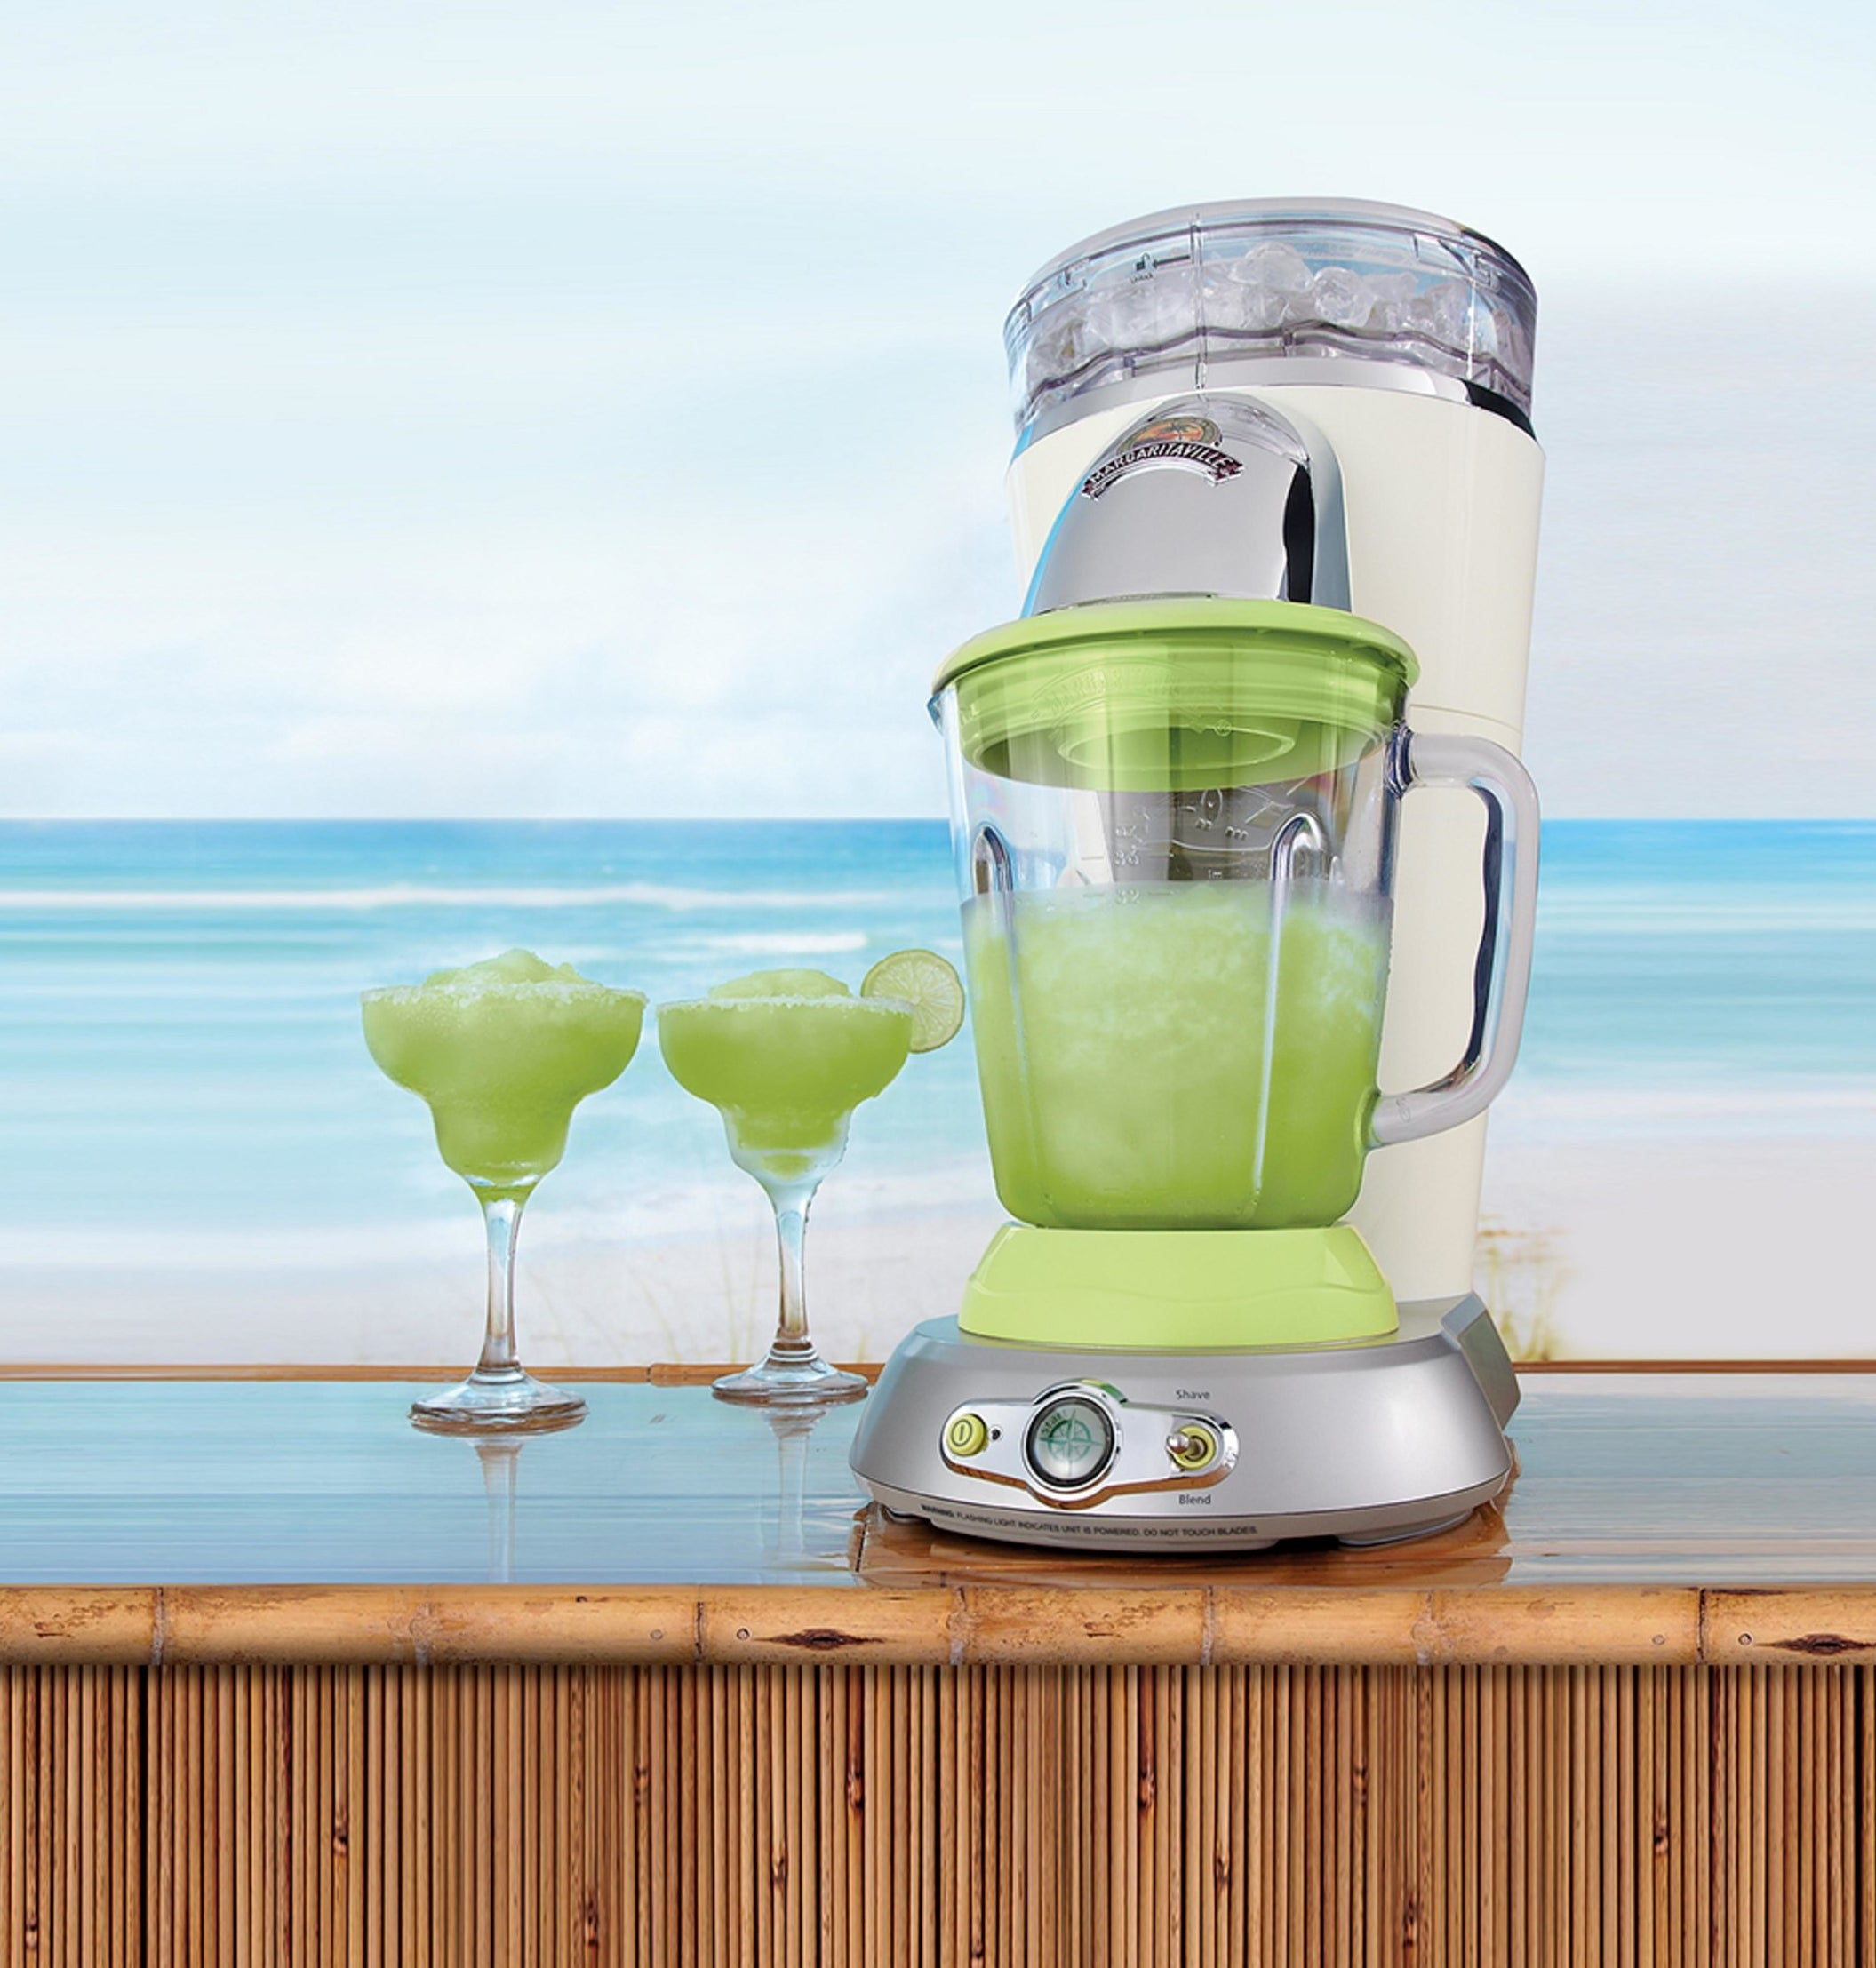 margaritaville frozen drink maker with a margarita in it and two margarita glasses on the bar